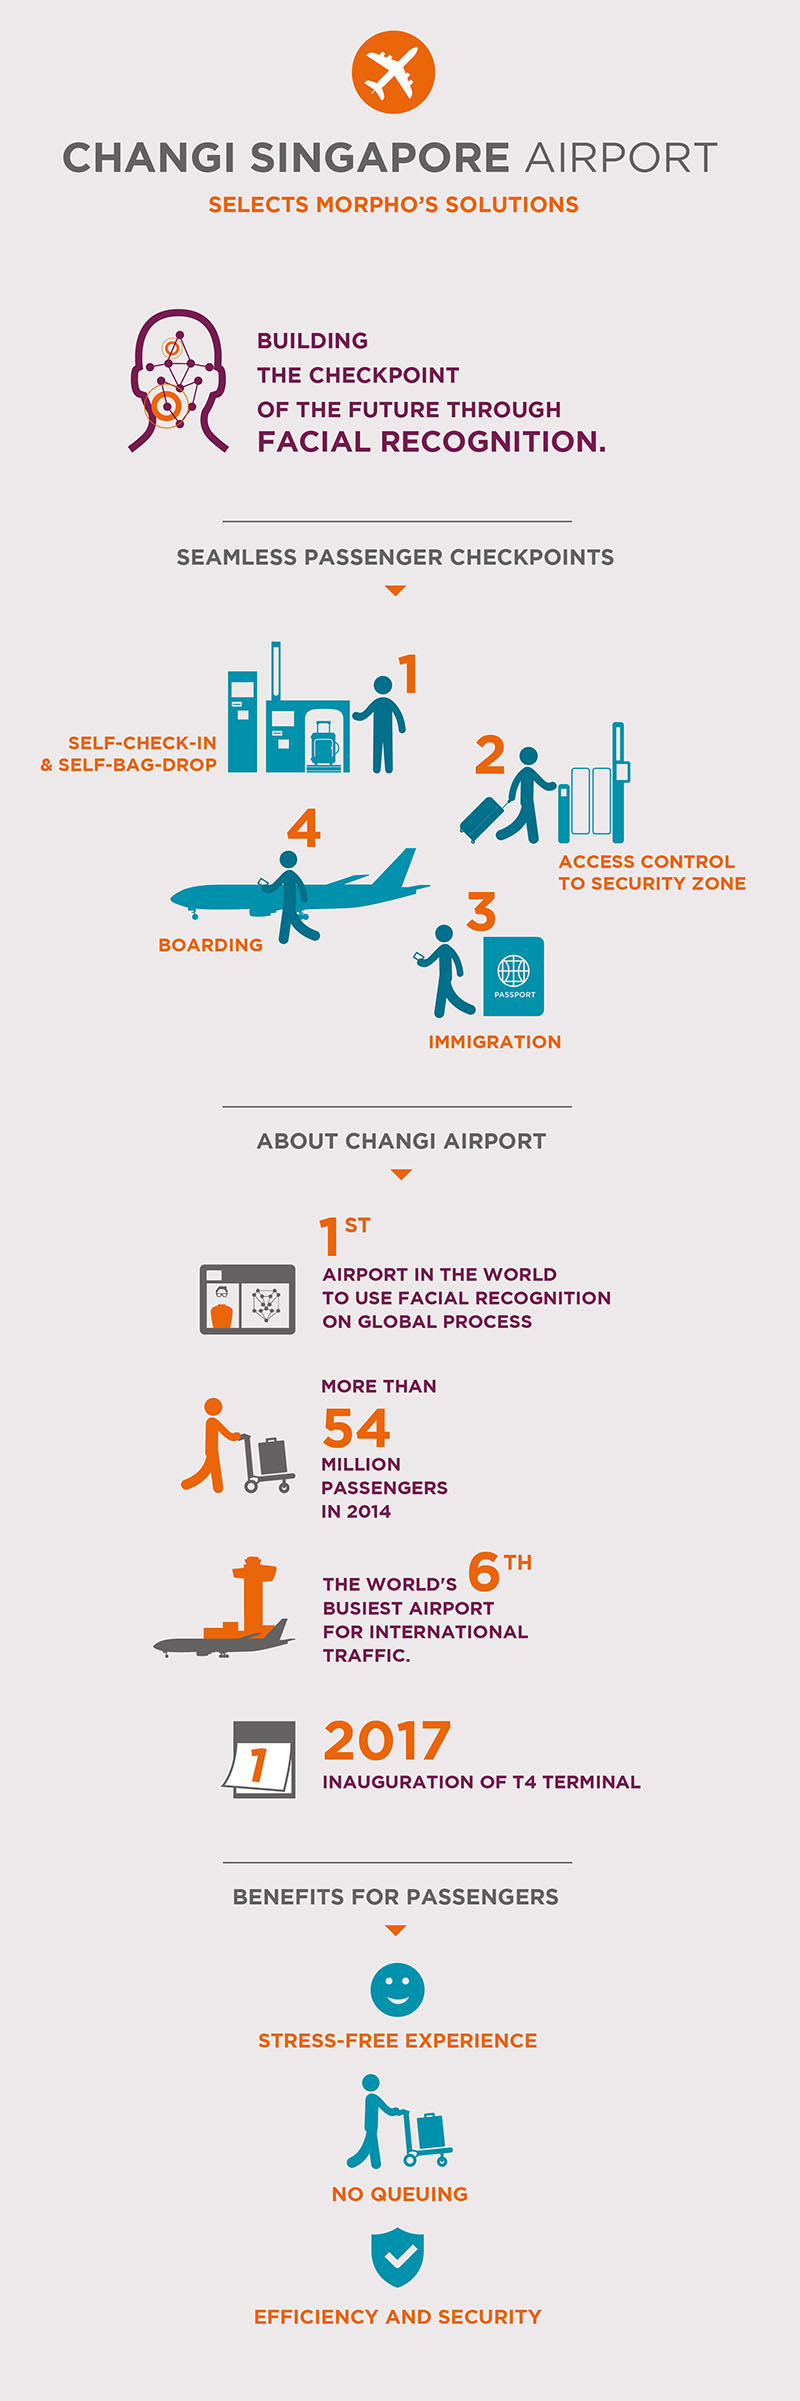 Changi Airport selects Morpho solutions